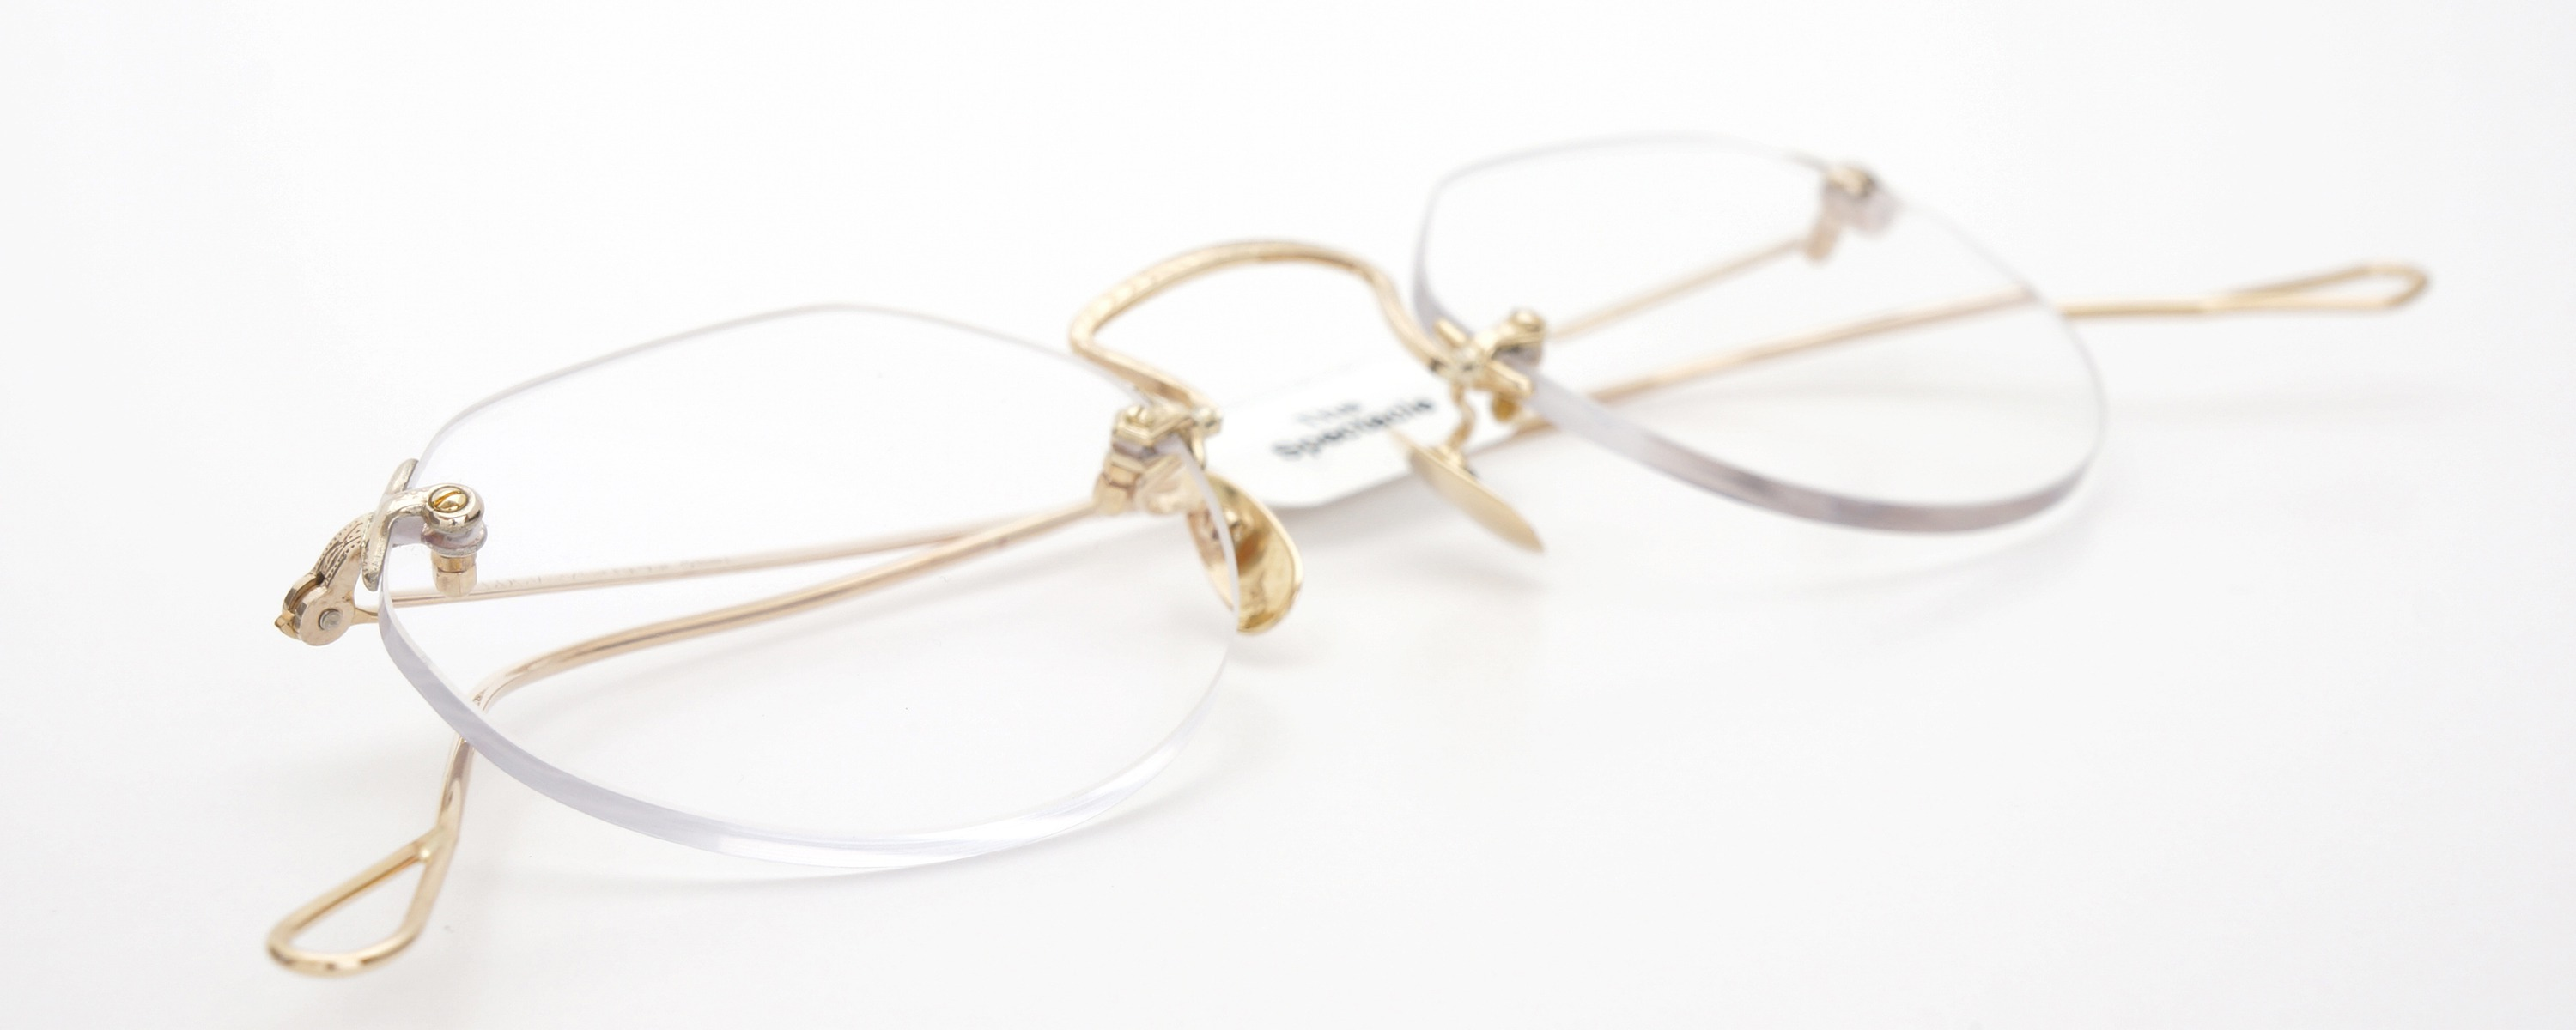 The Spectacle メガネ 1930s Bausch&Lomb 3-Piece Ful-Vue Whitfield YG 45-23 イメージ14